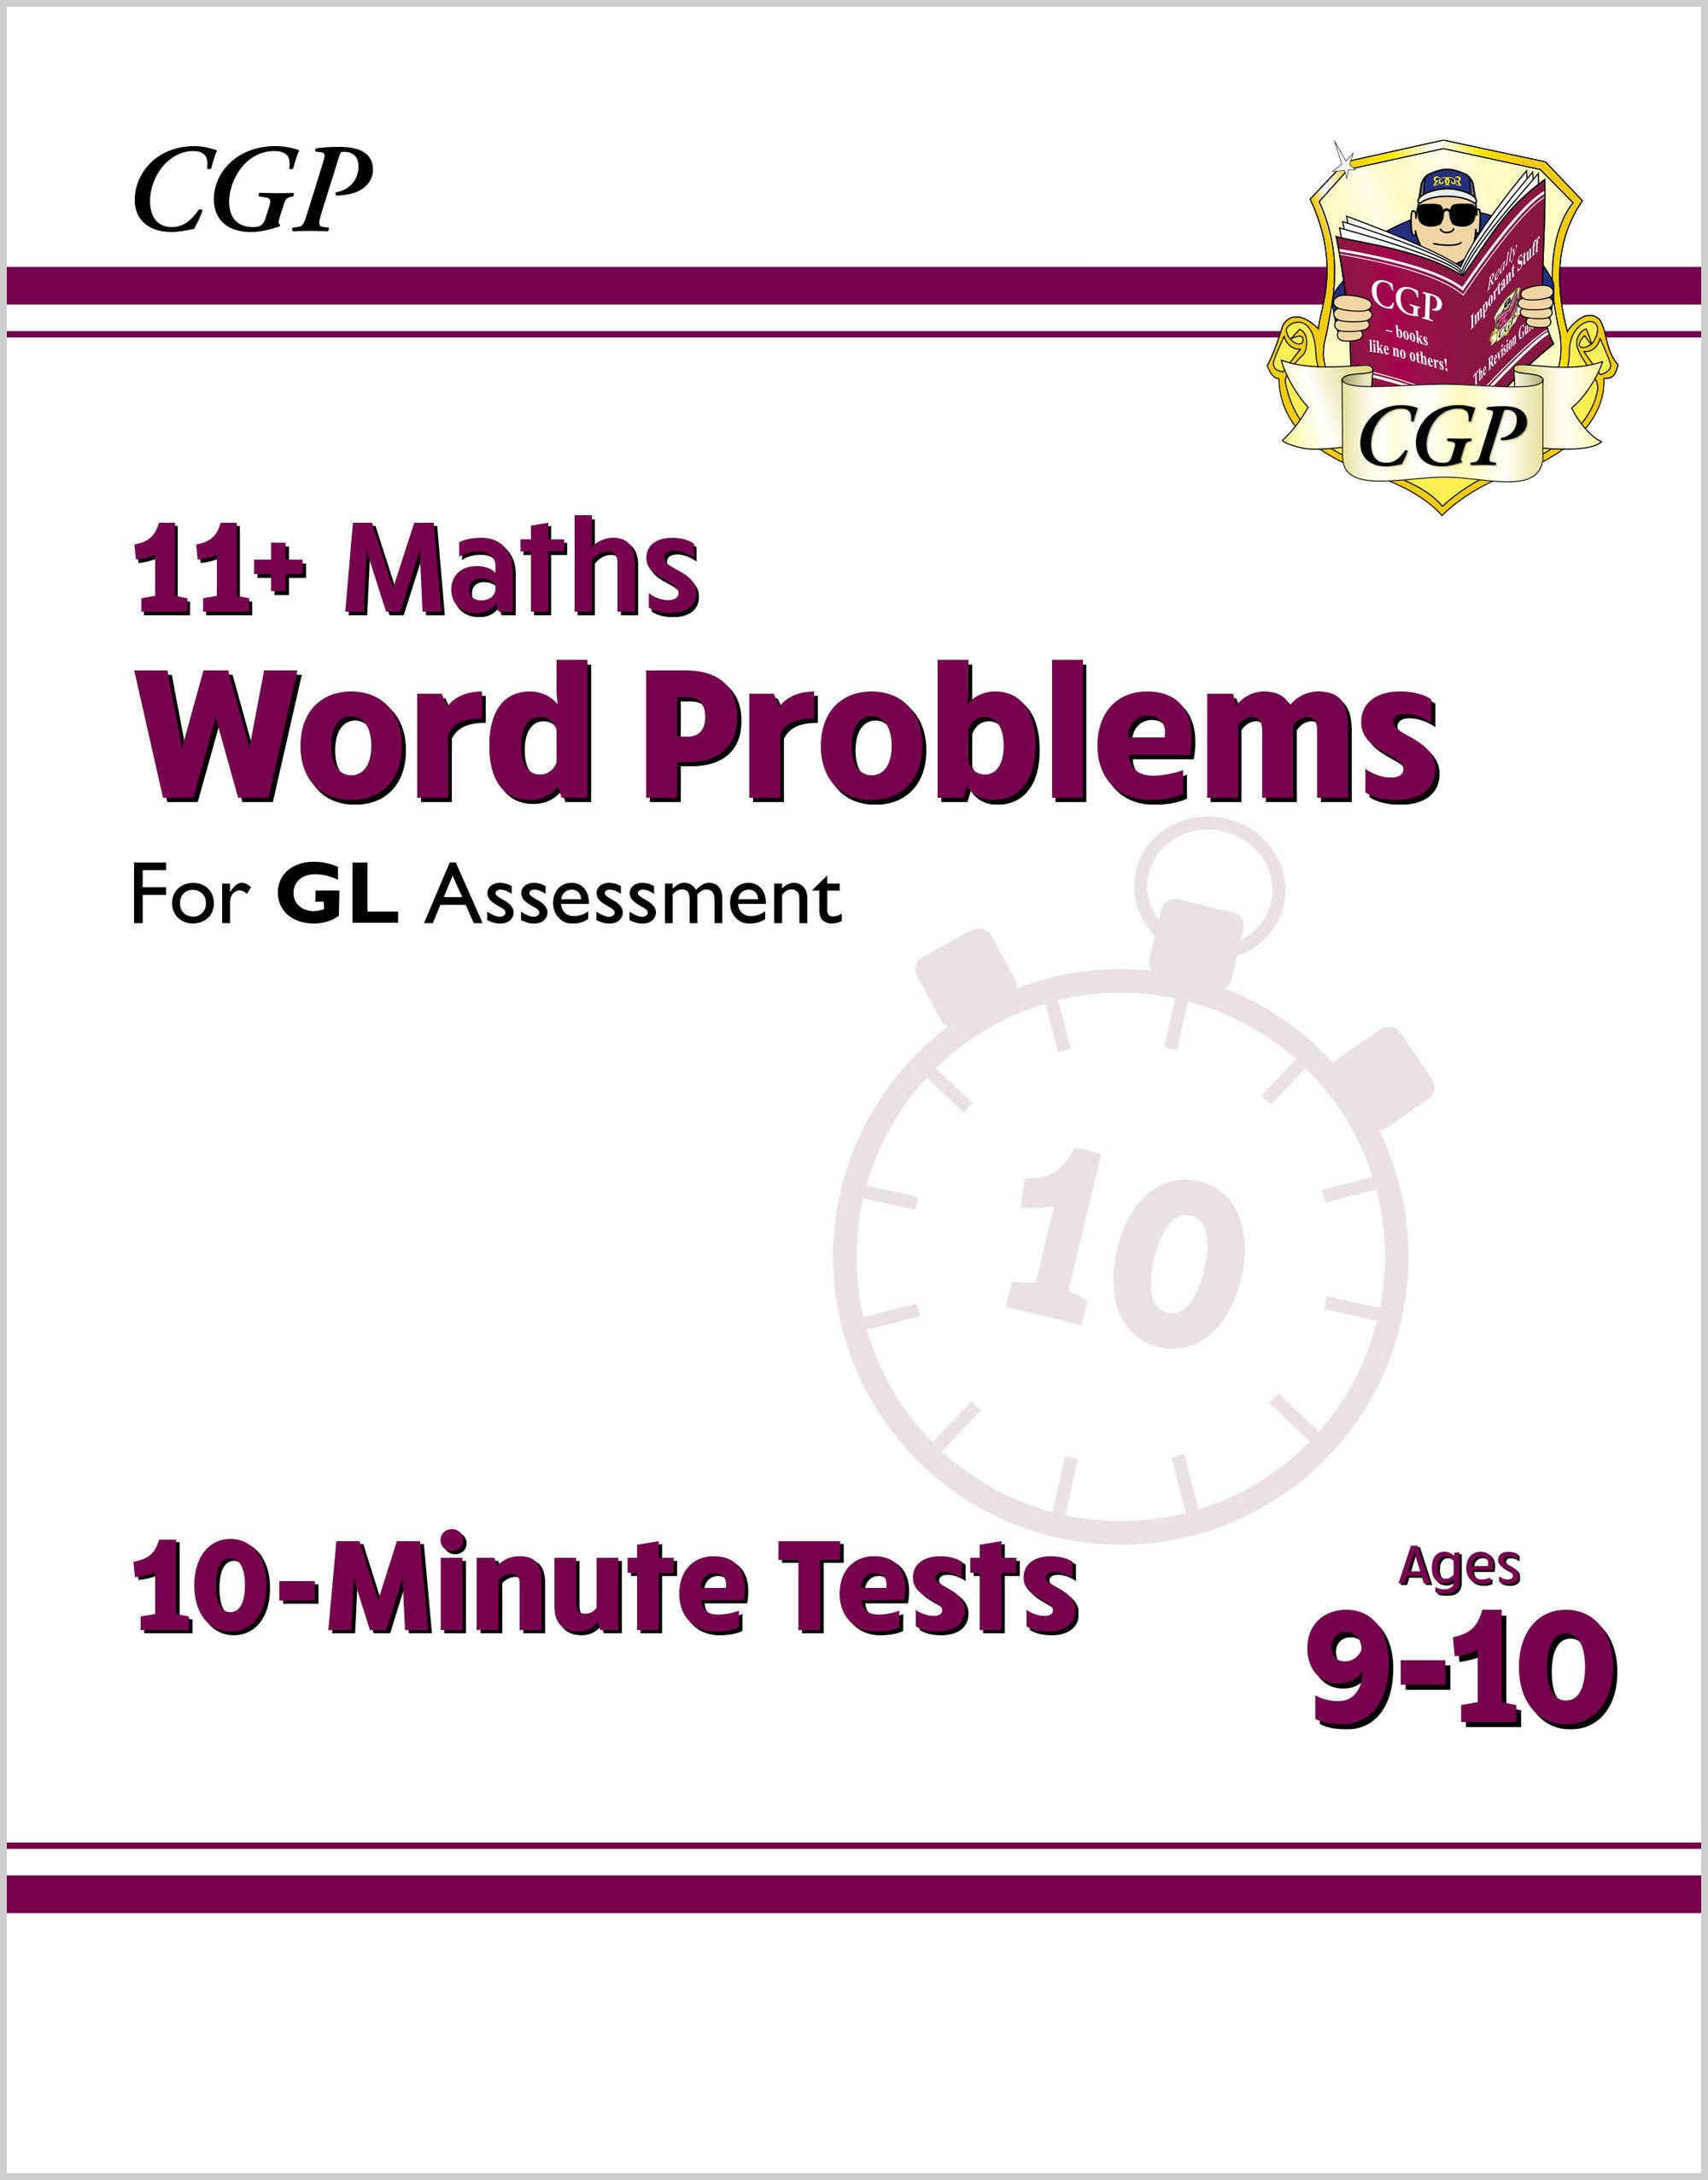 M5WXPE1DK - 11+ GL 10-Minute Tests: Maths Word Problems - Ages 9-10